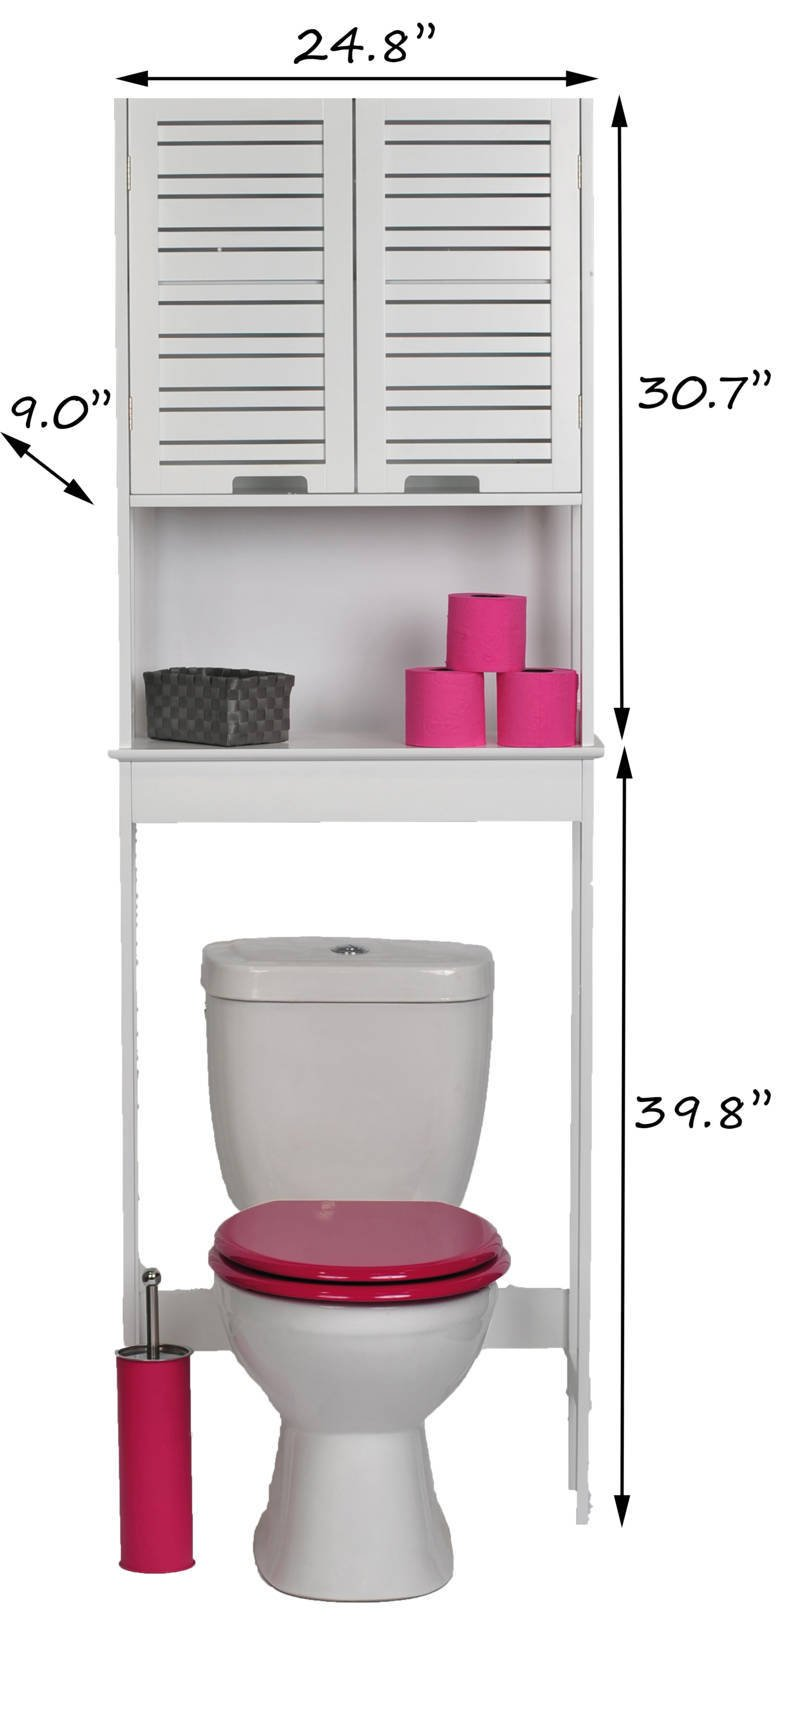 EVIDECO Over The Toilet Space Saver Cabinet Bathroom Furniture 70.5''H X 24.8''L (white) by EVIDECO